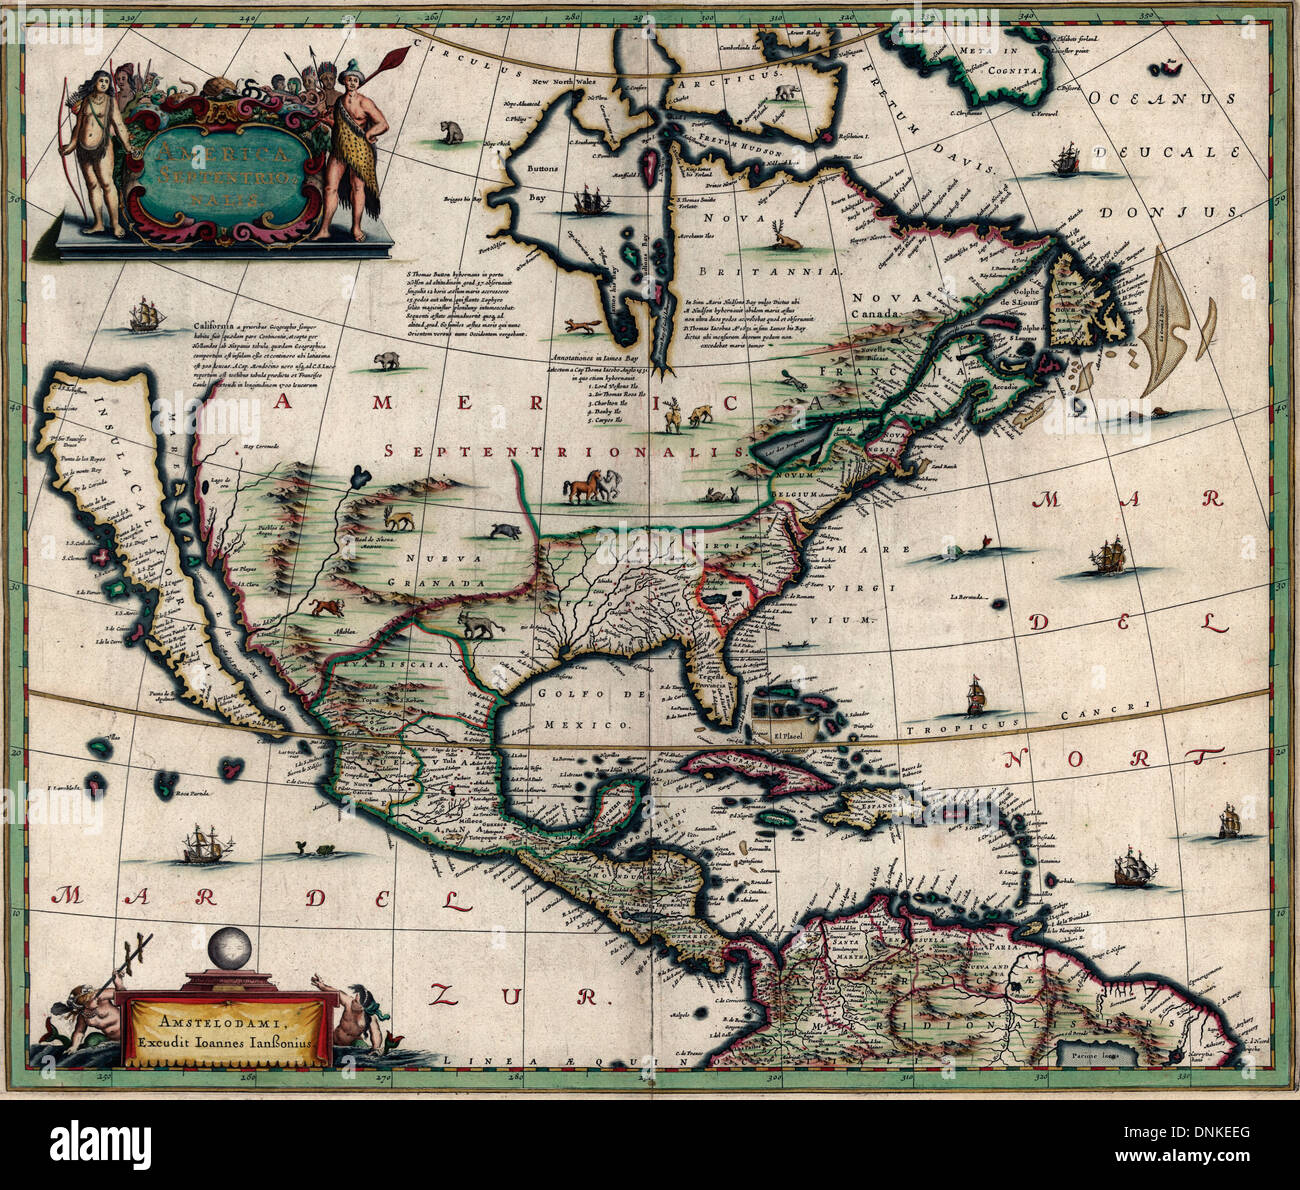 America Septentrionalis Map of North America January